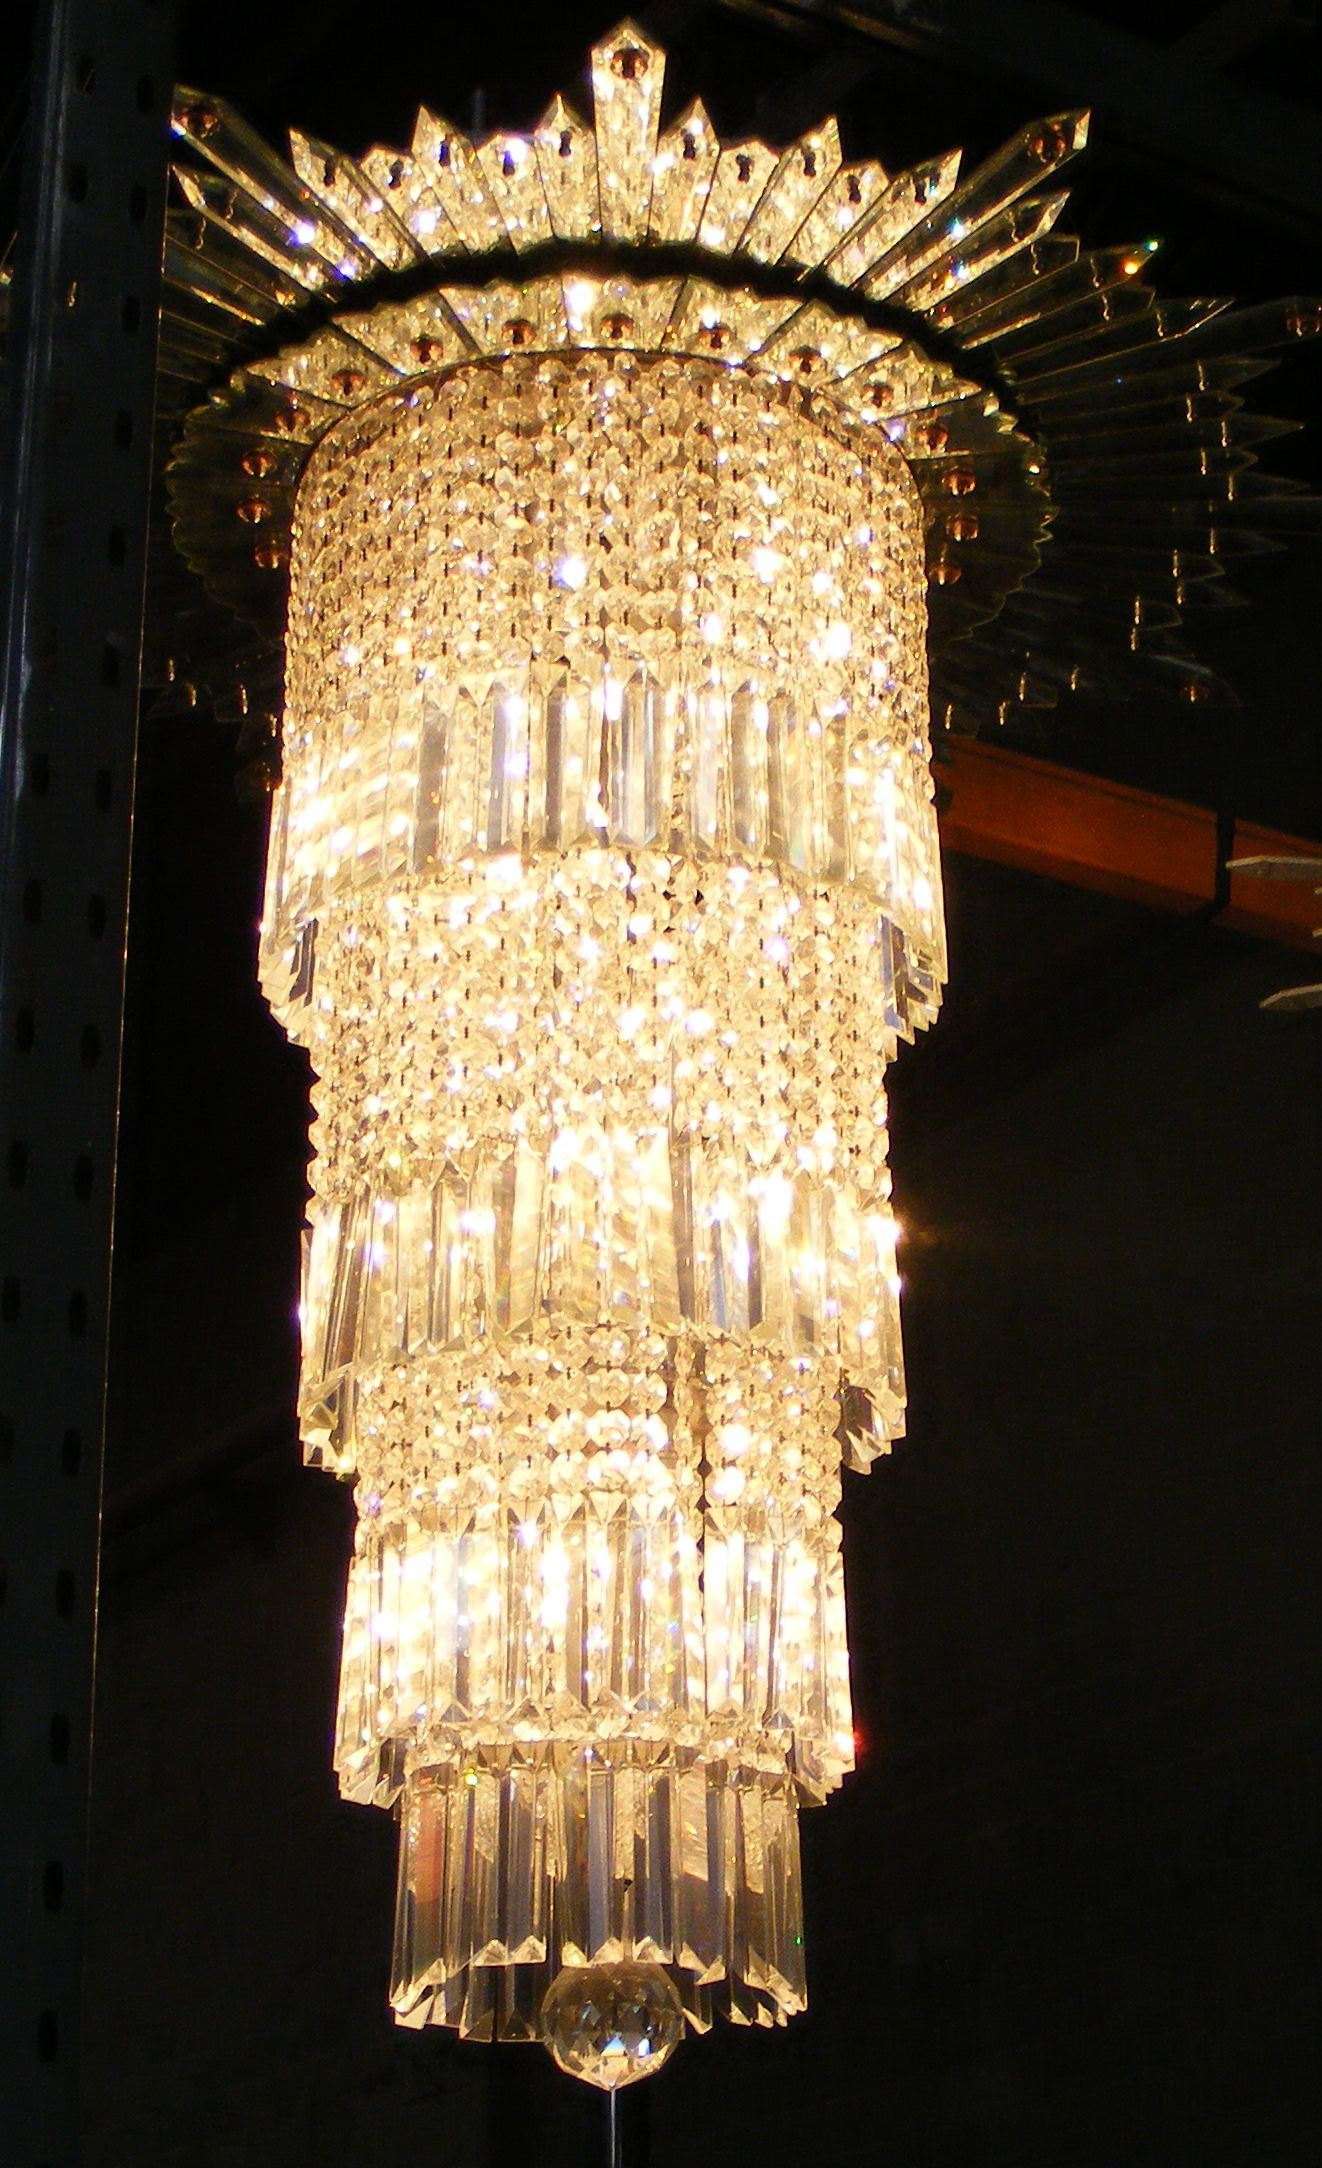 hotel lighting  u2013 custom manufactured product categories  u00ab hotel wholesale furniture supplier